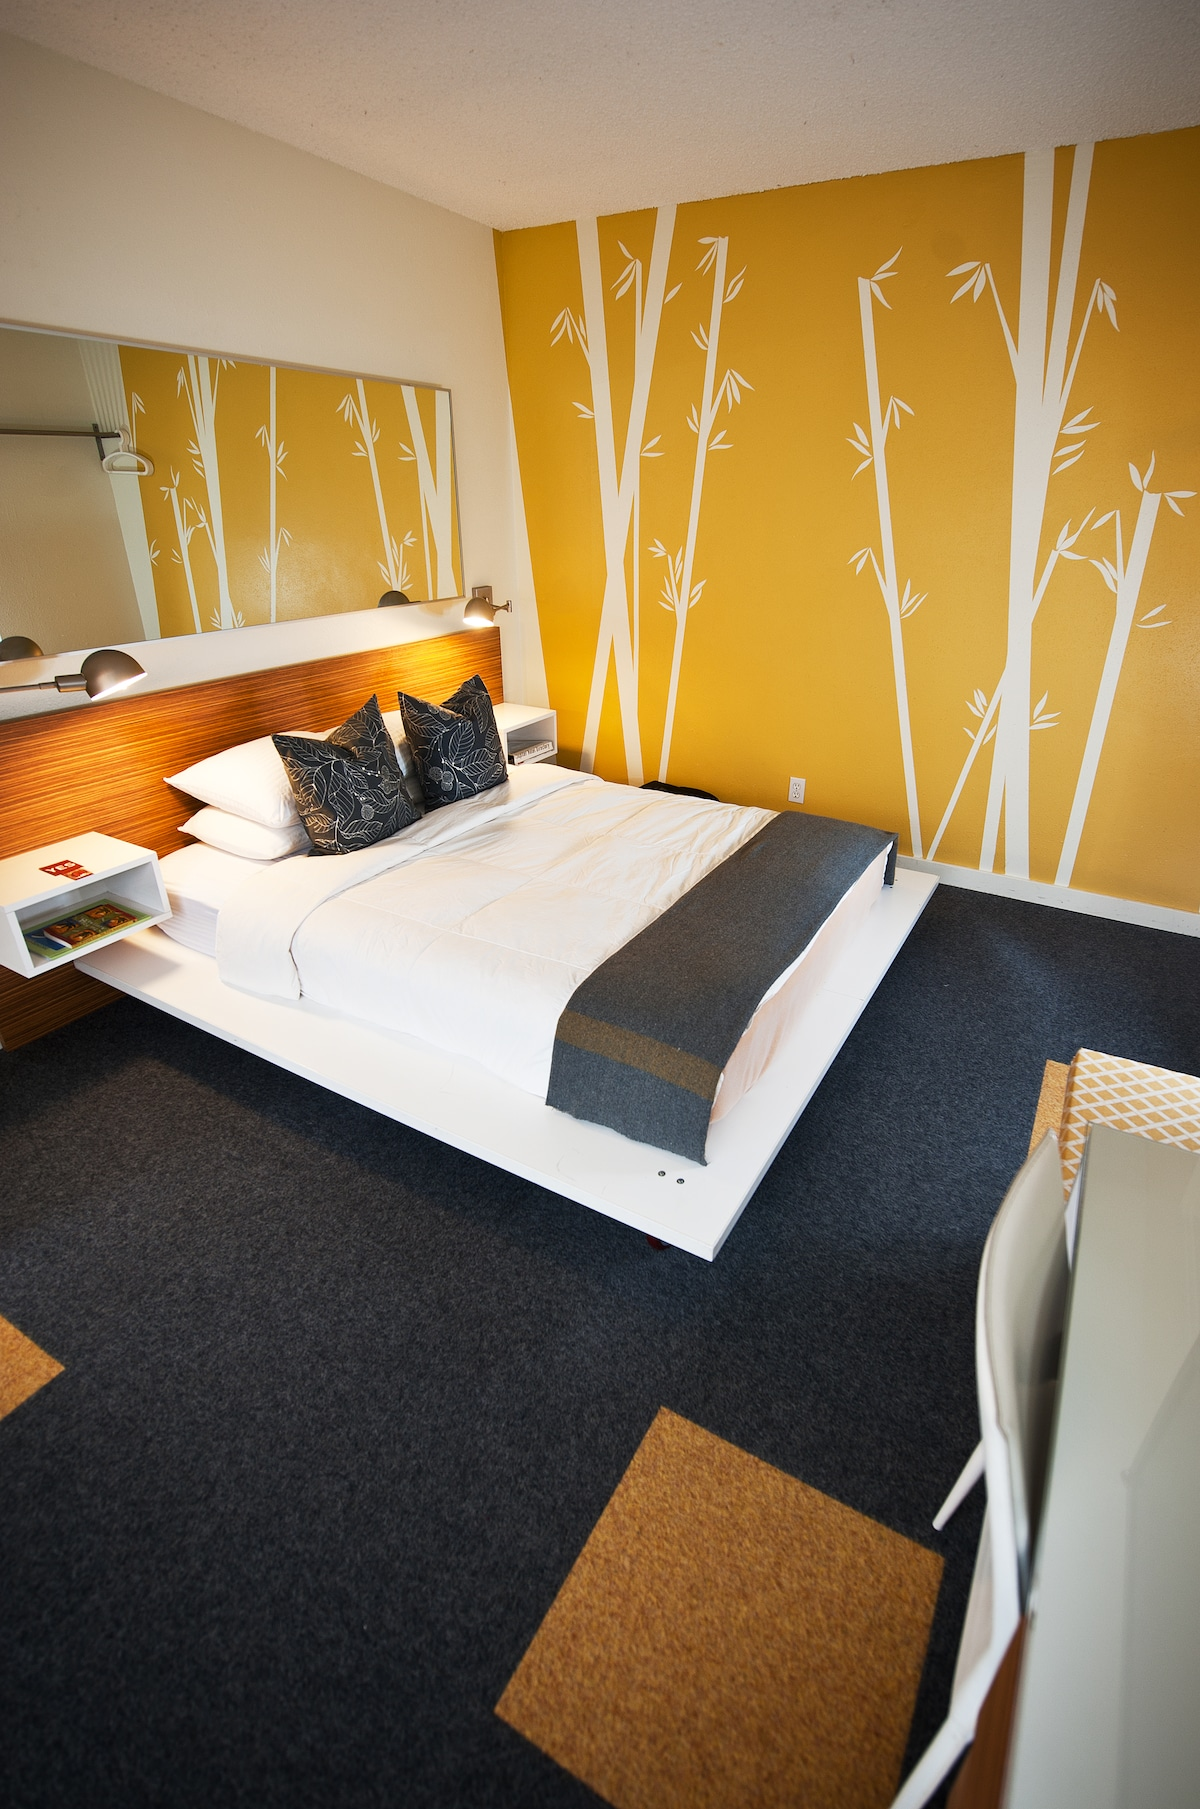 Your private room, with bathroom, features one queen pillowtop bed with down comforters and professionally laundered linens.